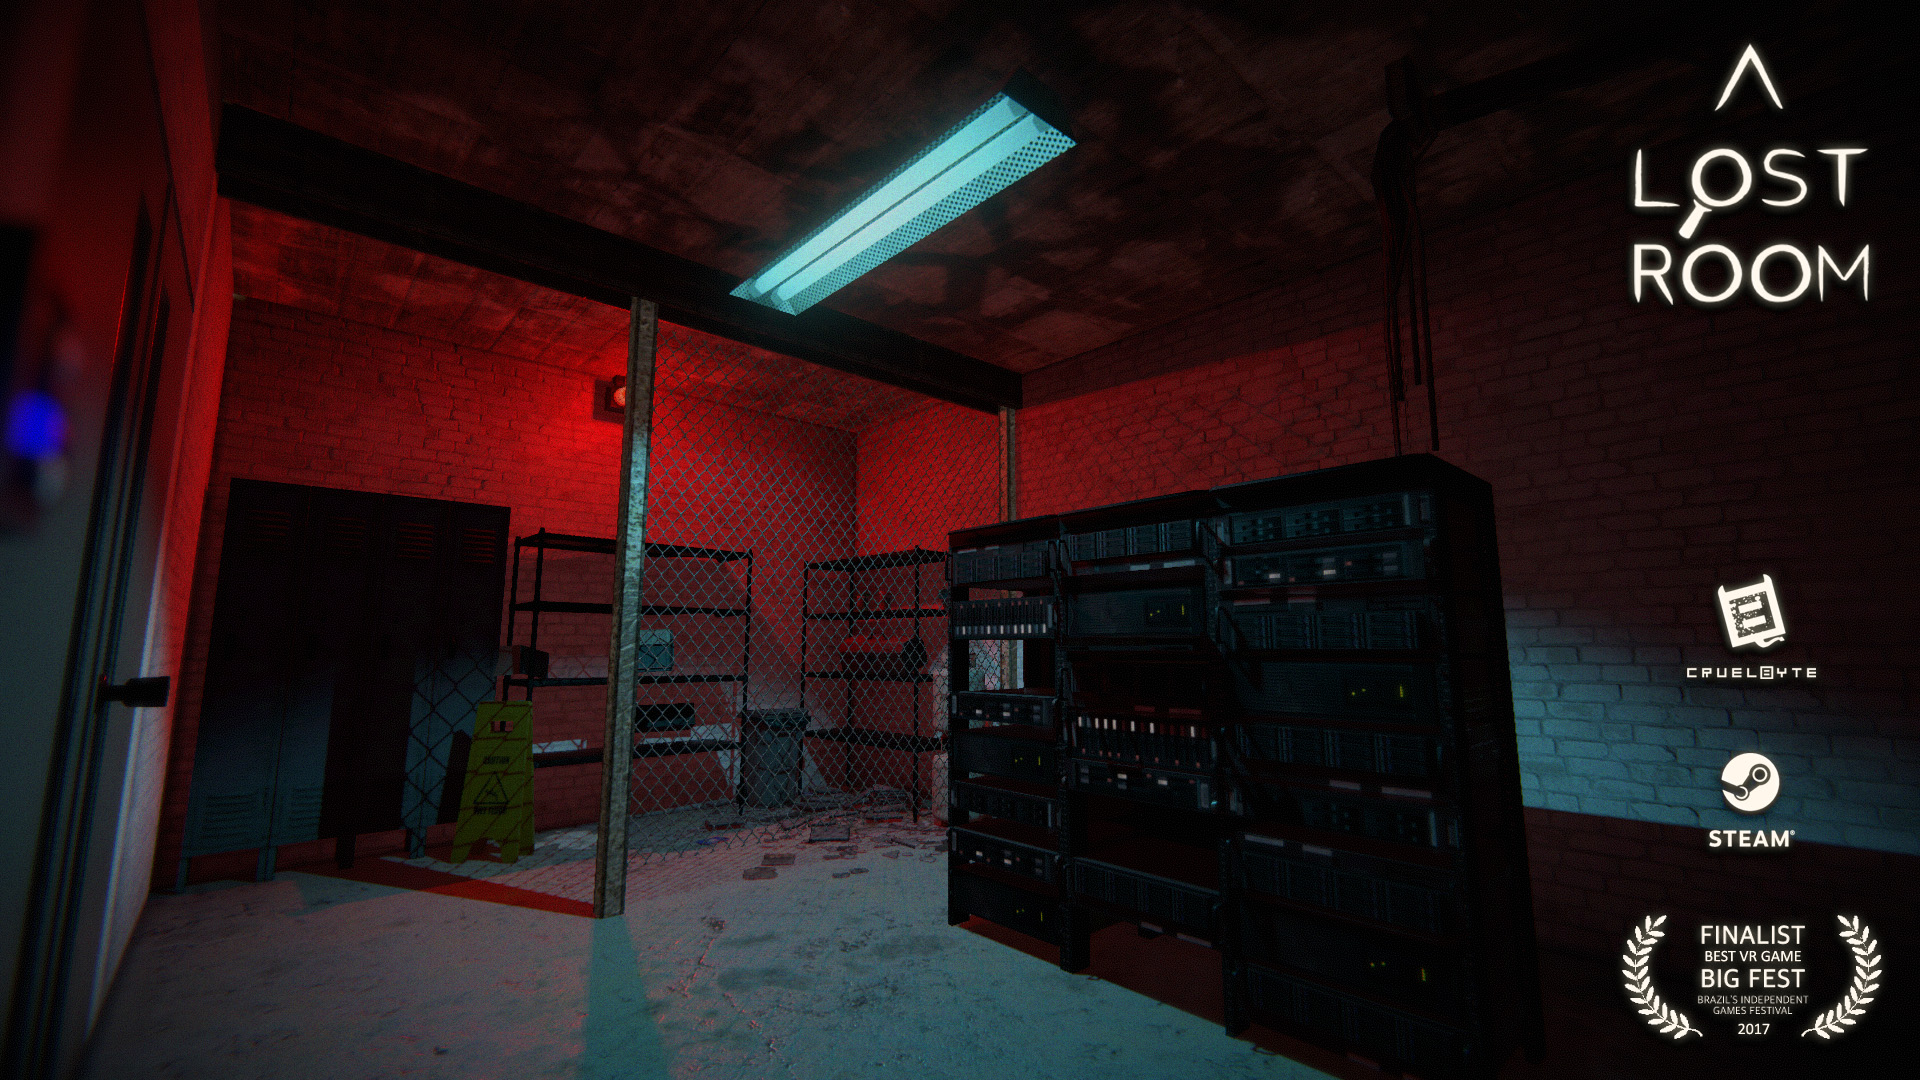 A Lost Room On Steam